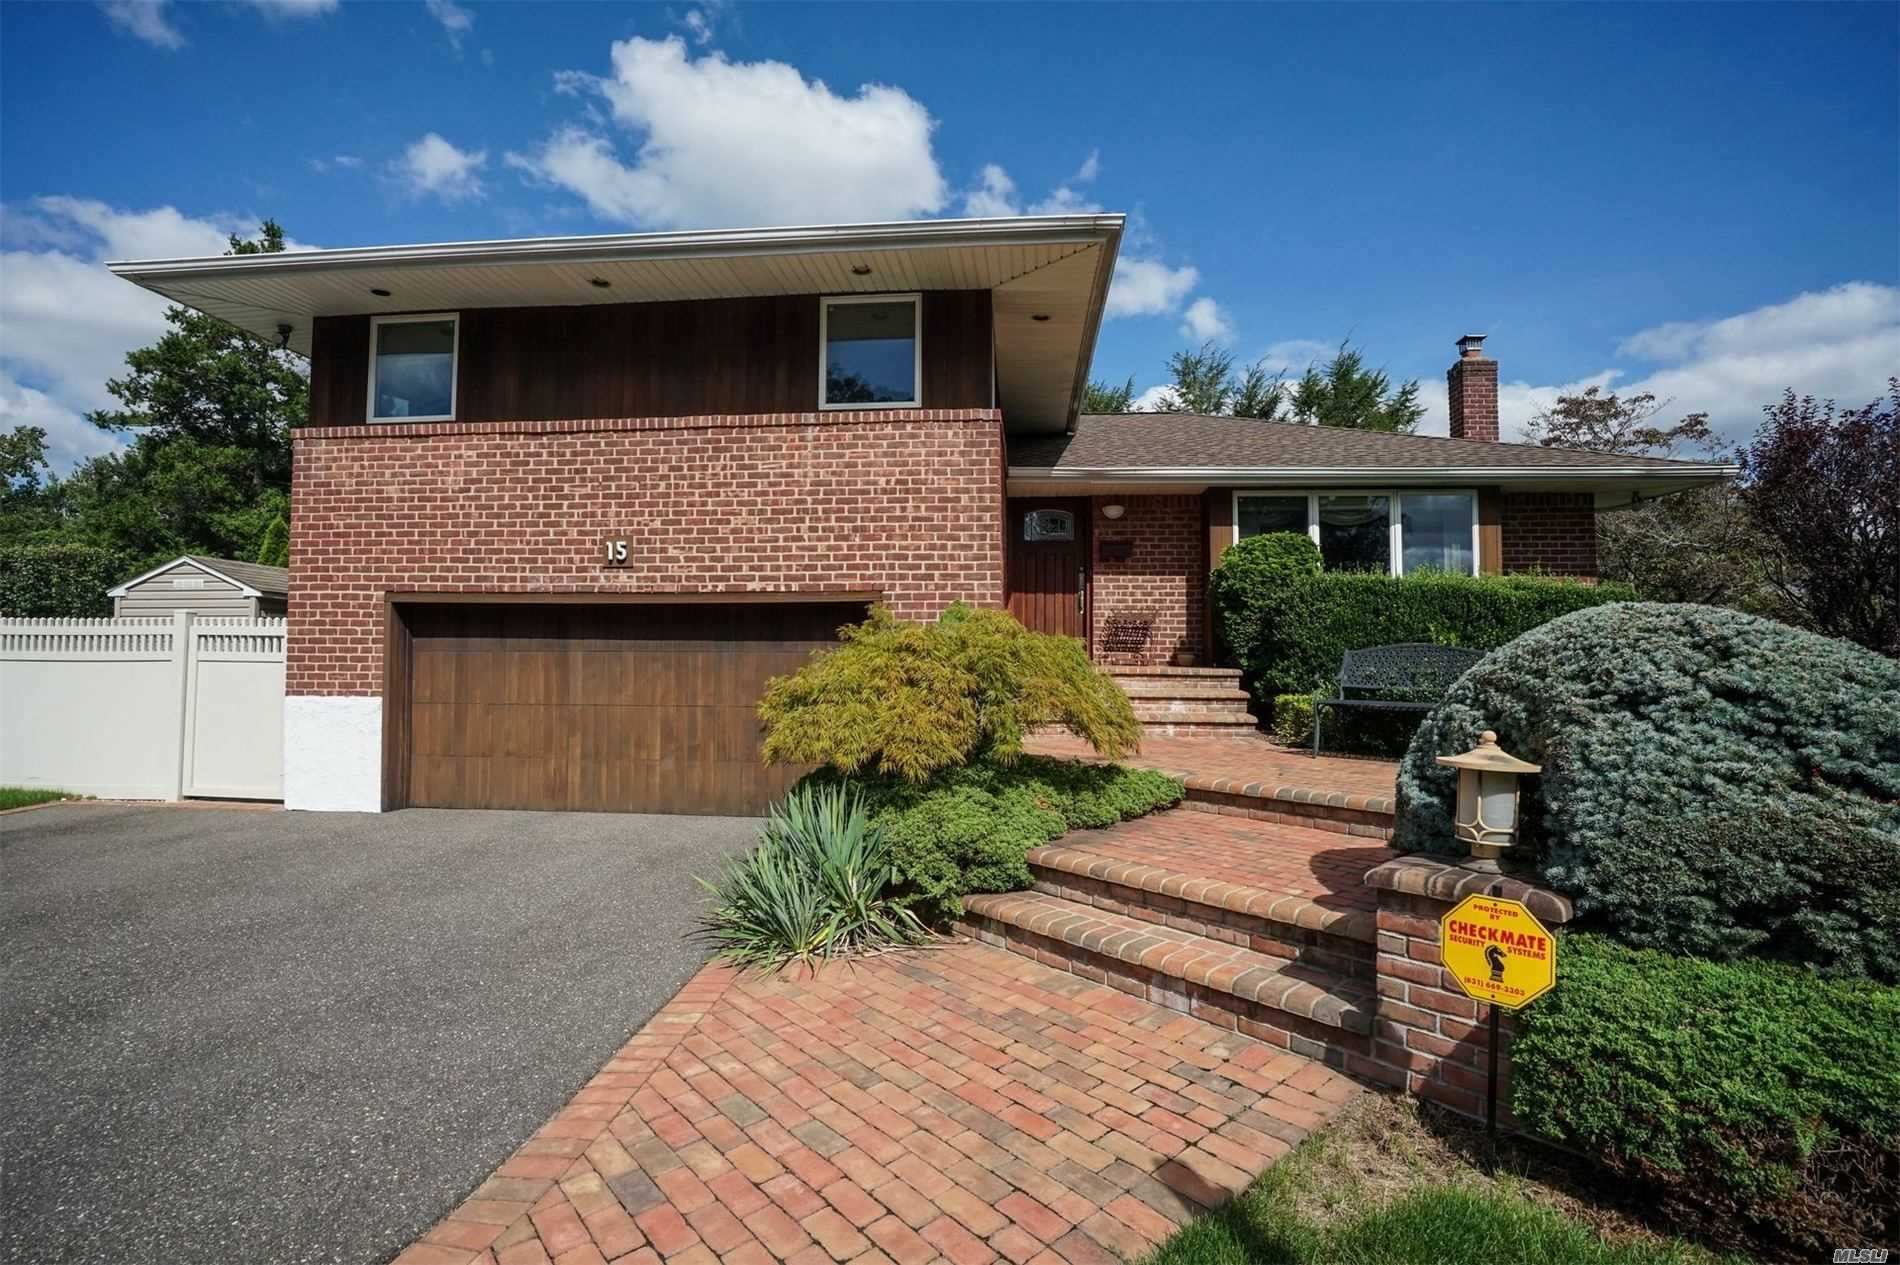 Perfection in Woodbury Hills! This Spacious light & bright Split is fully bricked and set on a prime 73x116 Property with an in- ground heated vinyl pool! Large Kitchen with Stainless Appliances, large entertaining rooms, master with bath, in ground sprinklers, 2 car garage, & CAC! privacy Galore ...all in Plainview School District! Will not last!